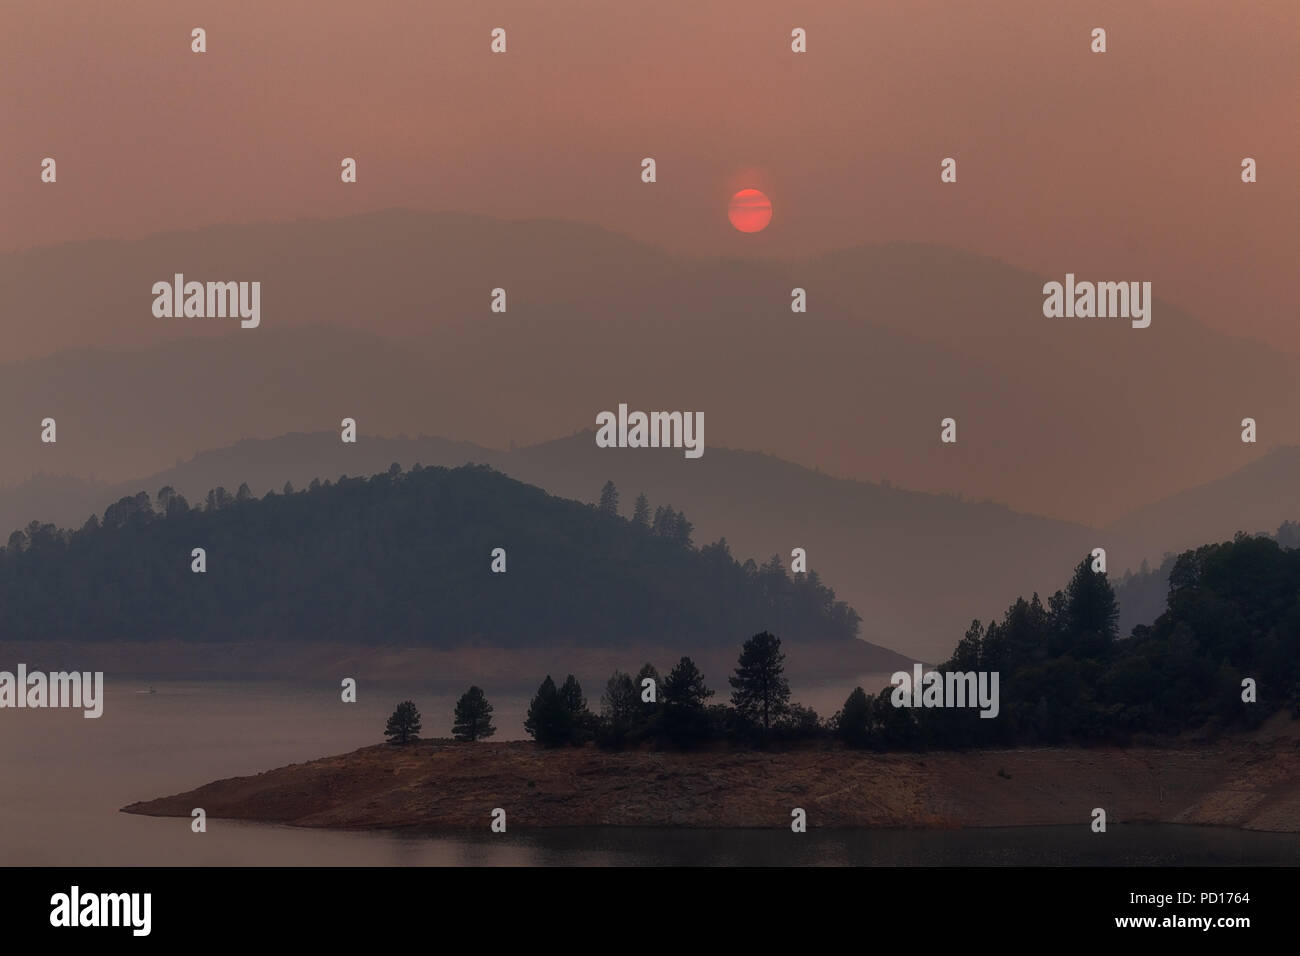 Wildfire smoke filled sky with setting sun over Shasta Lake during the Carr fire near Redding, California. - Stock Image